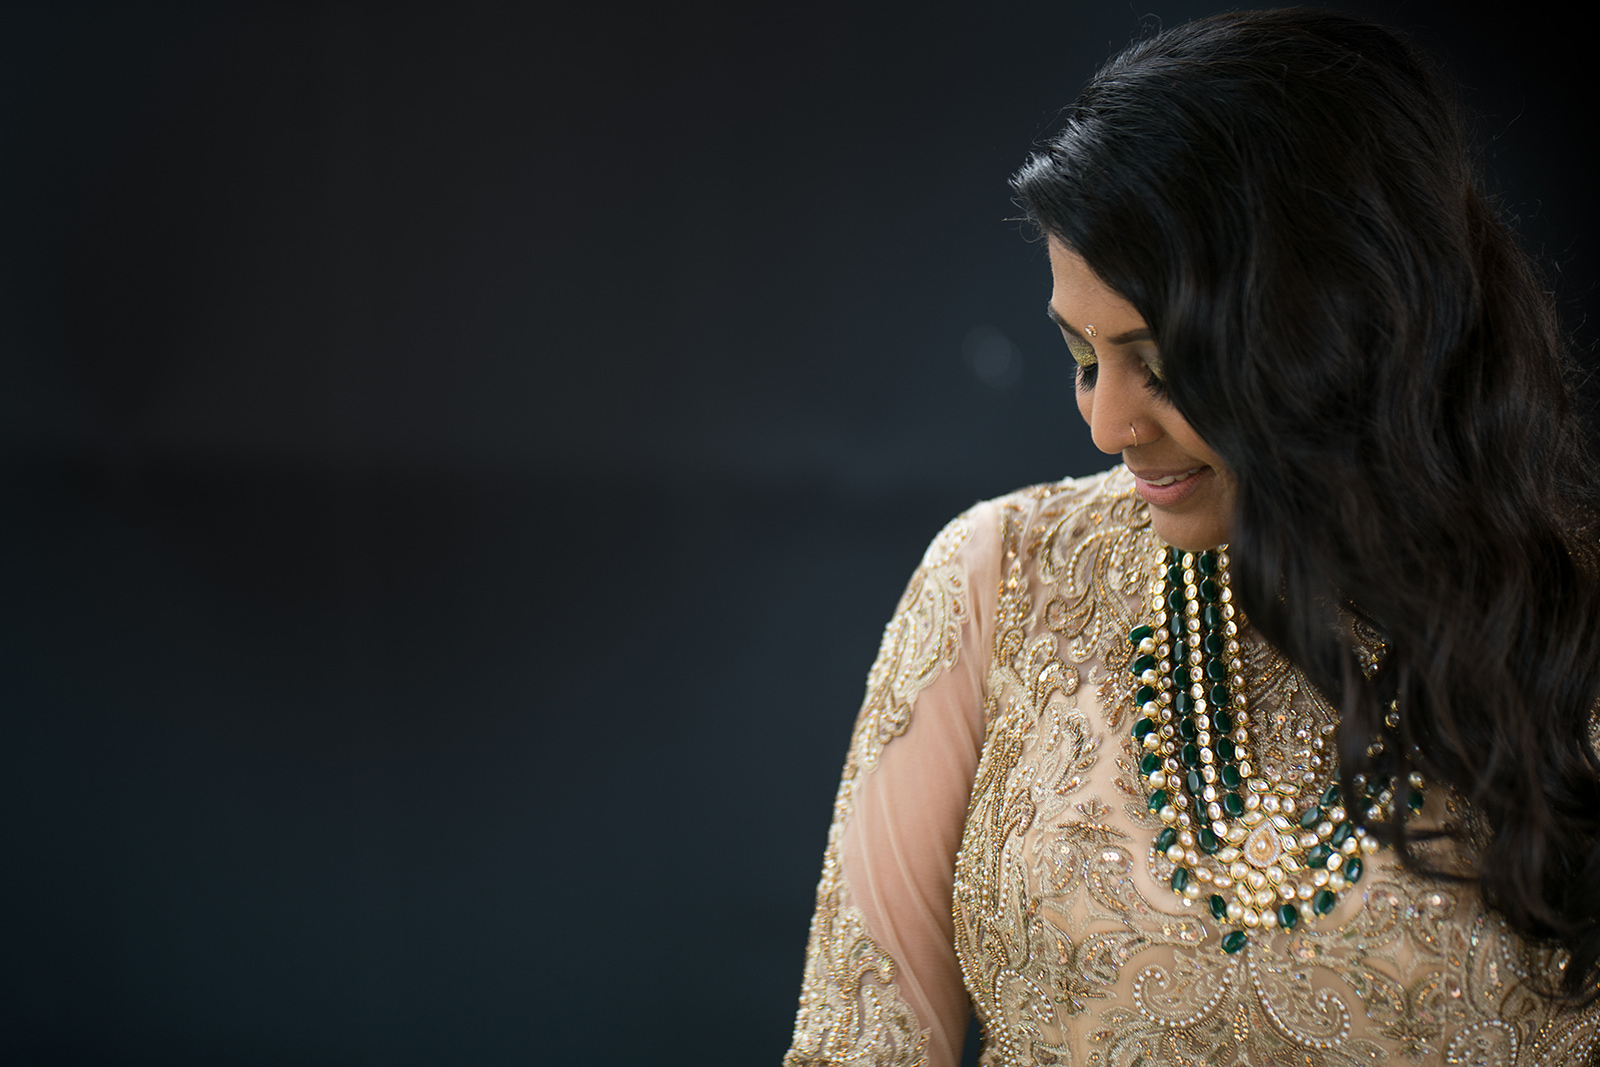 Le Cape Weddings - Swati and Ankur - Sneak Peek -5-3.jpg